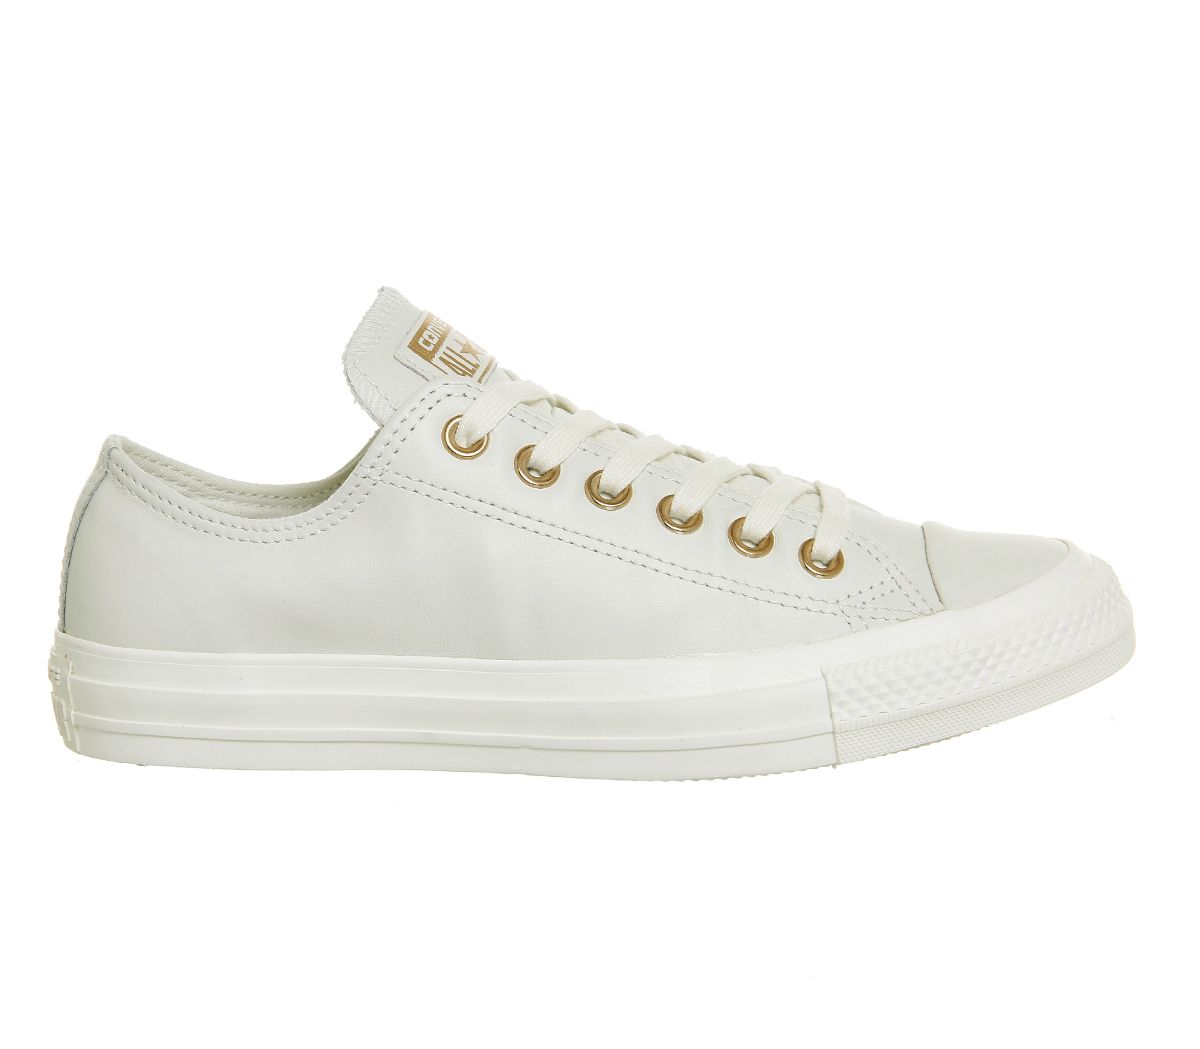 converse egret. buy egret rose gold exclusive converse all star low leather from office.co.uk a